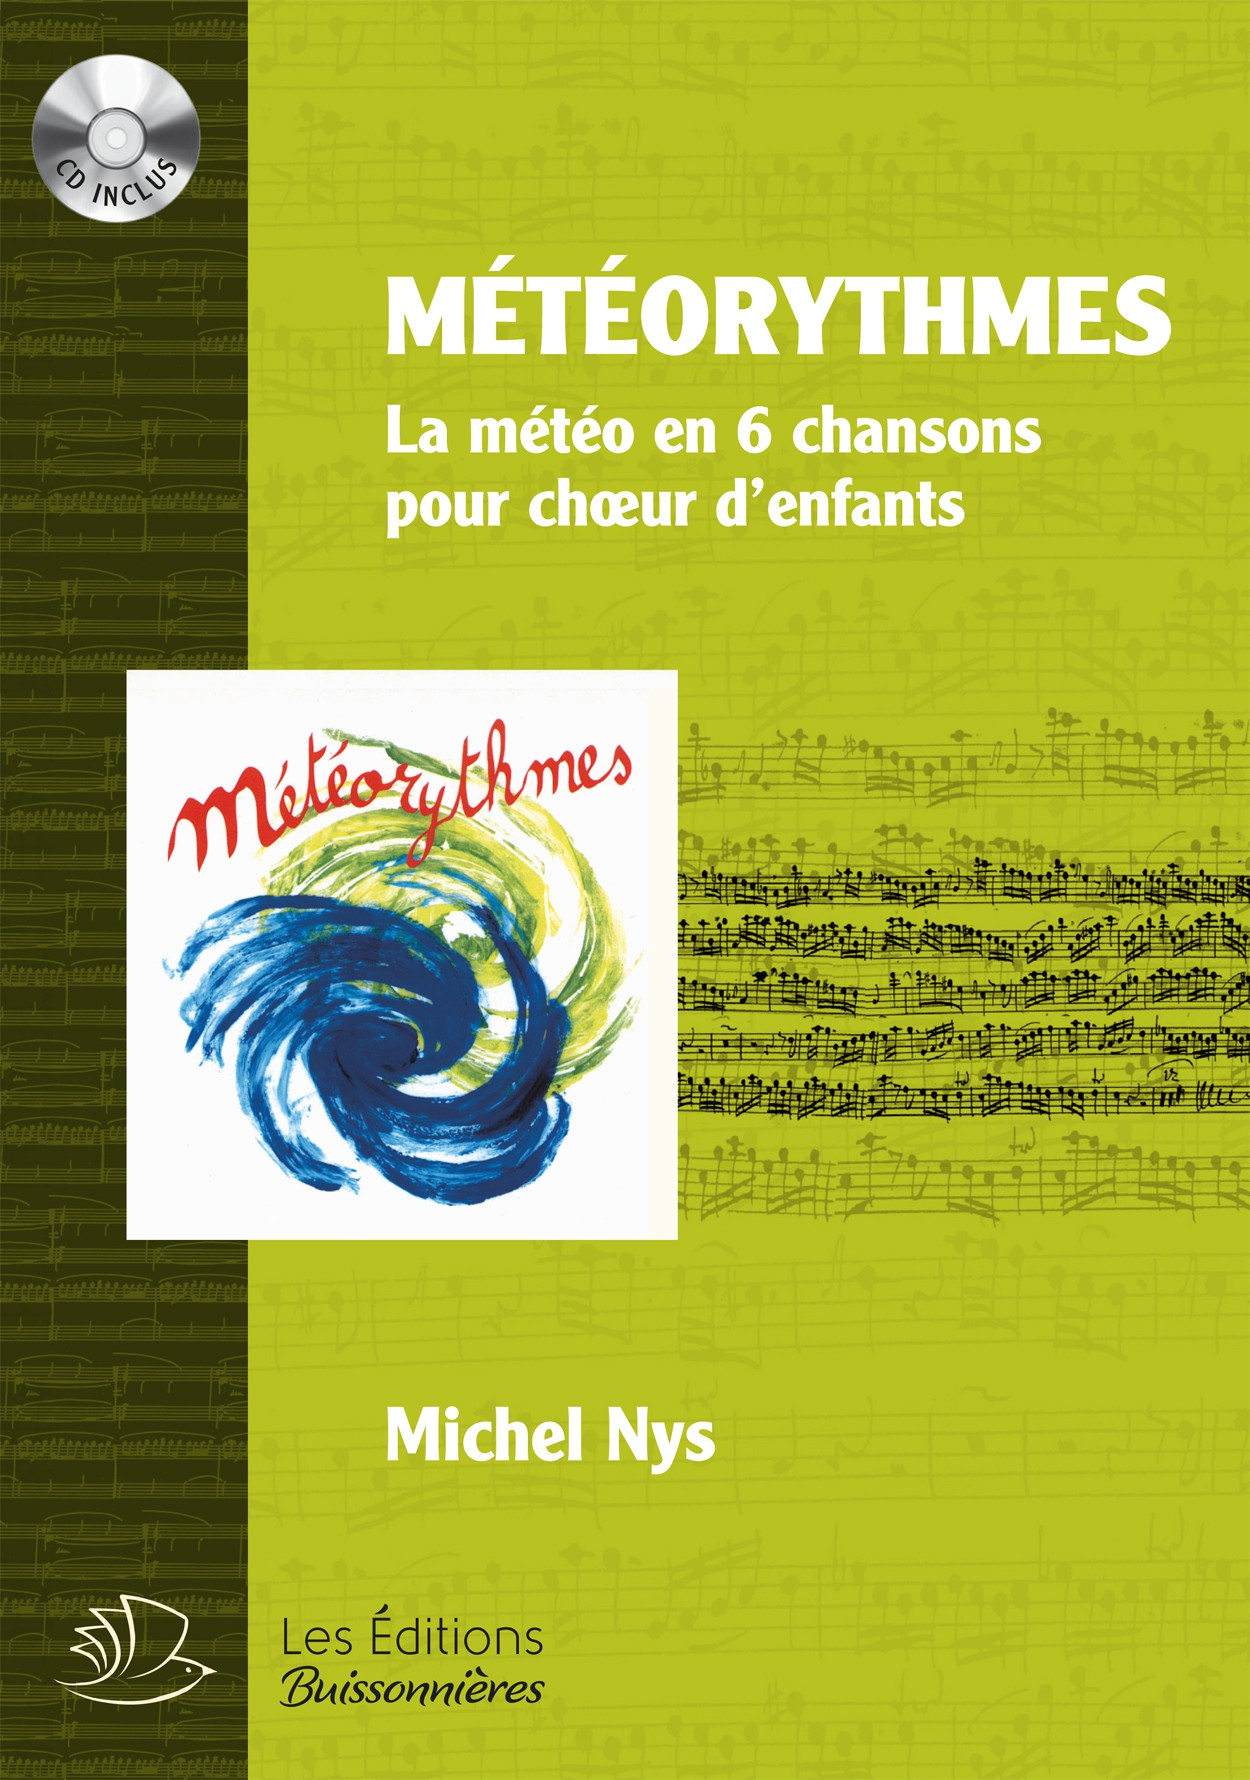 Partitions Météorythmes, Michel Nys, partition & CD